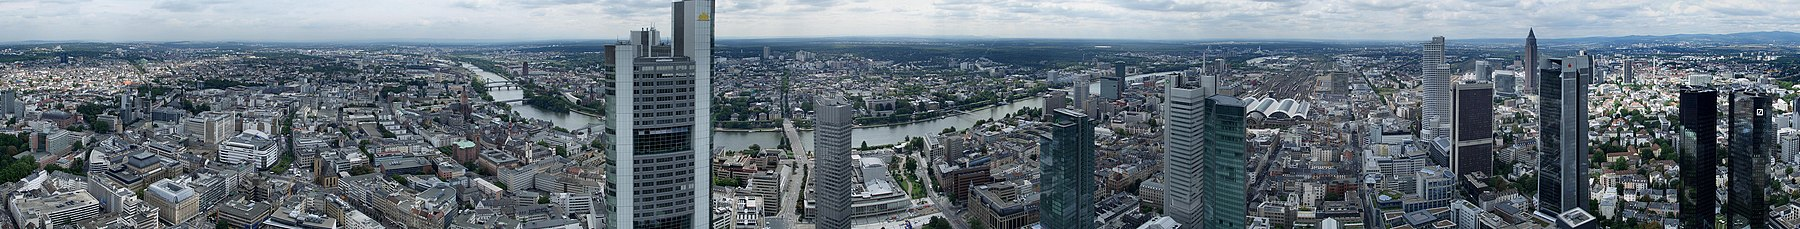 Panorama de Franfurt vista da Maintower.